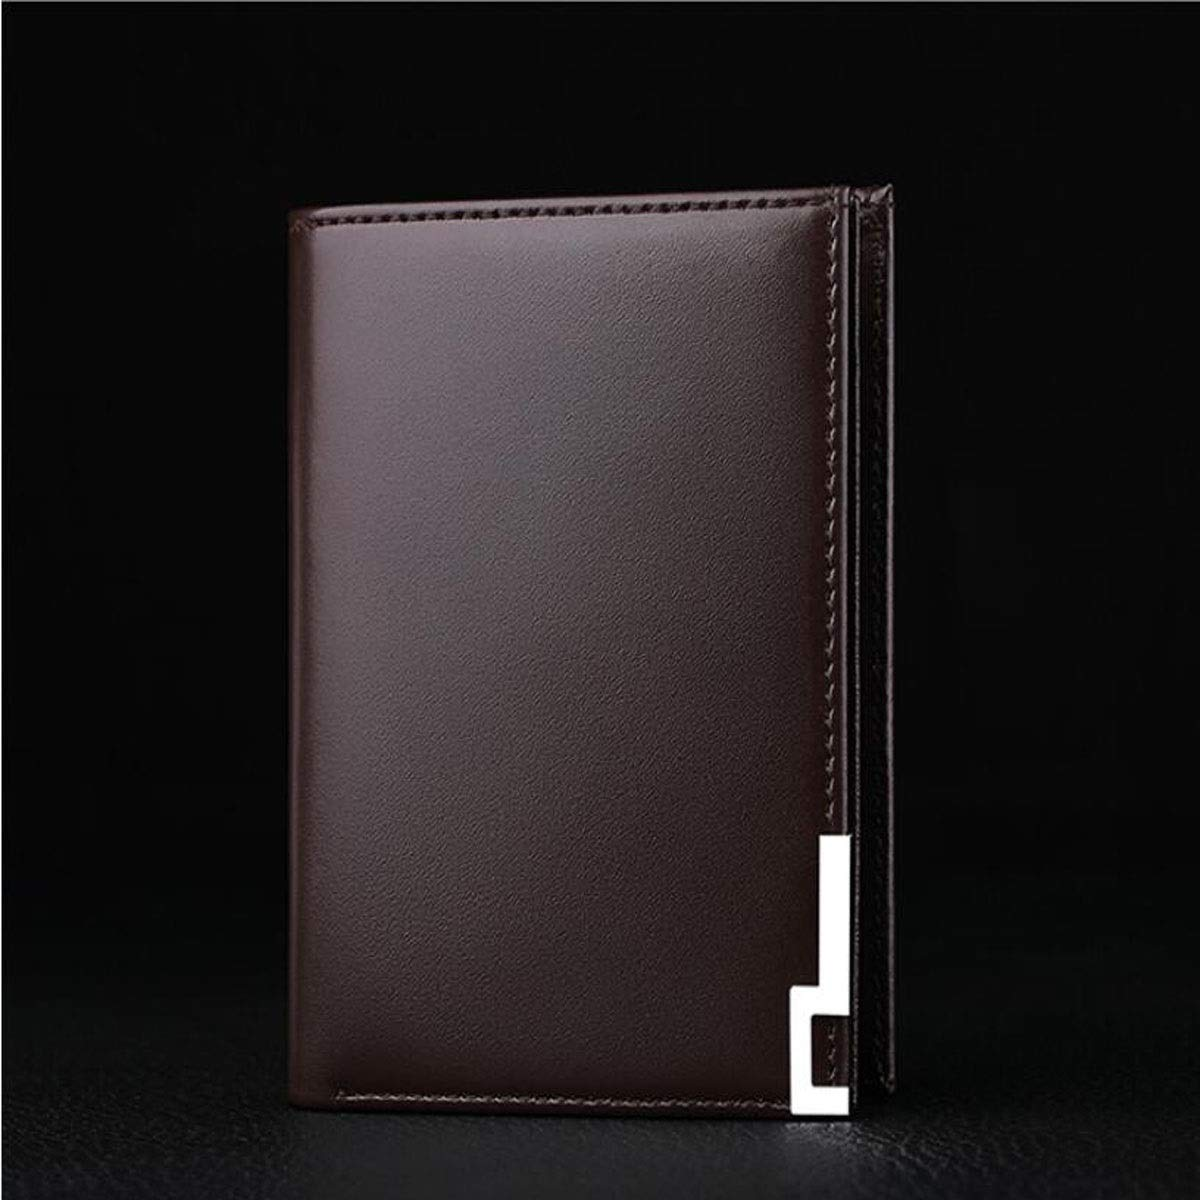 Black Suitable for Mens Short cm Stealth Mode Blocking Leather Wallet Stylish Casual Multi-Functional Youth Leather Wallet Size Kalmar RFID Travel Wallet Color 11.8 1.5 9.5